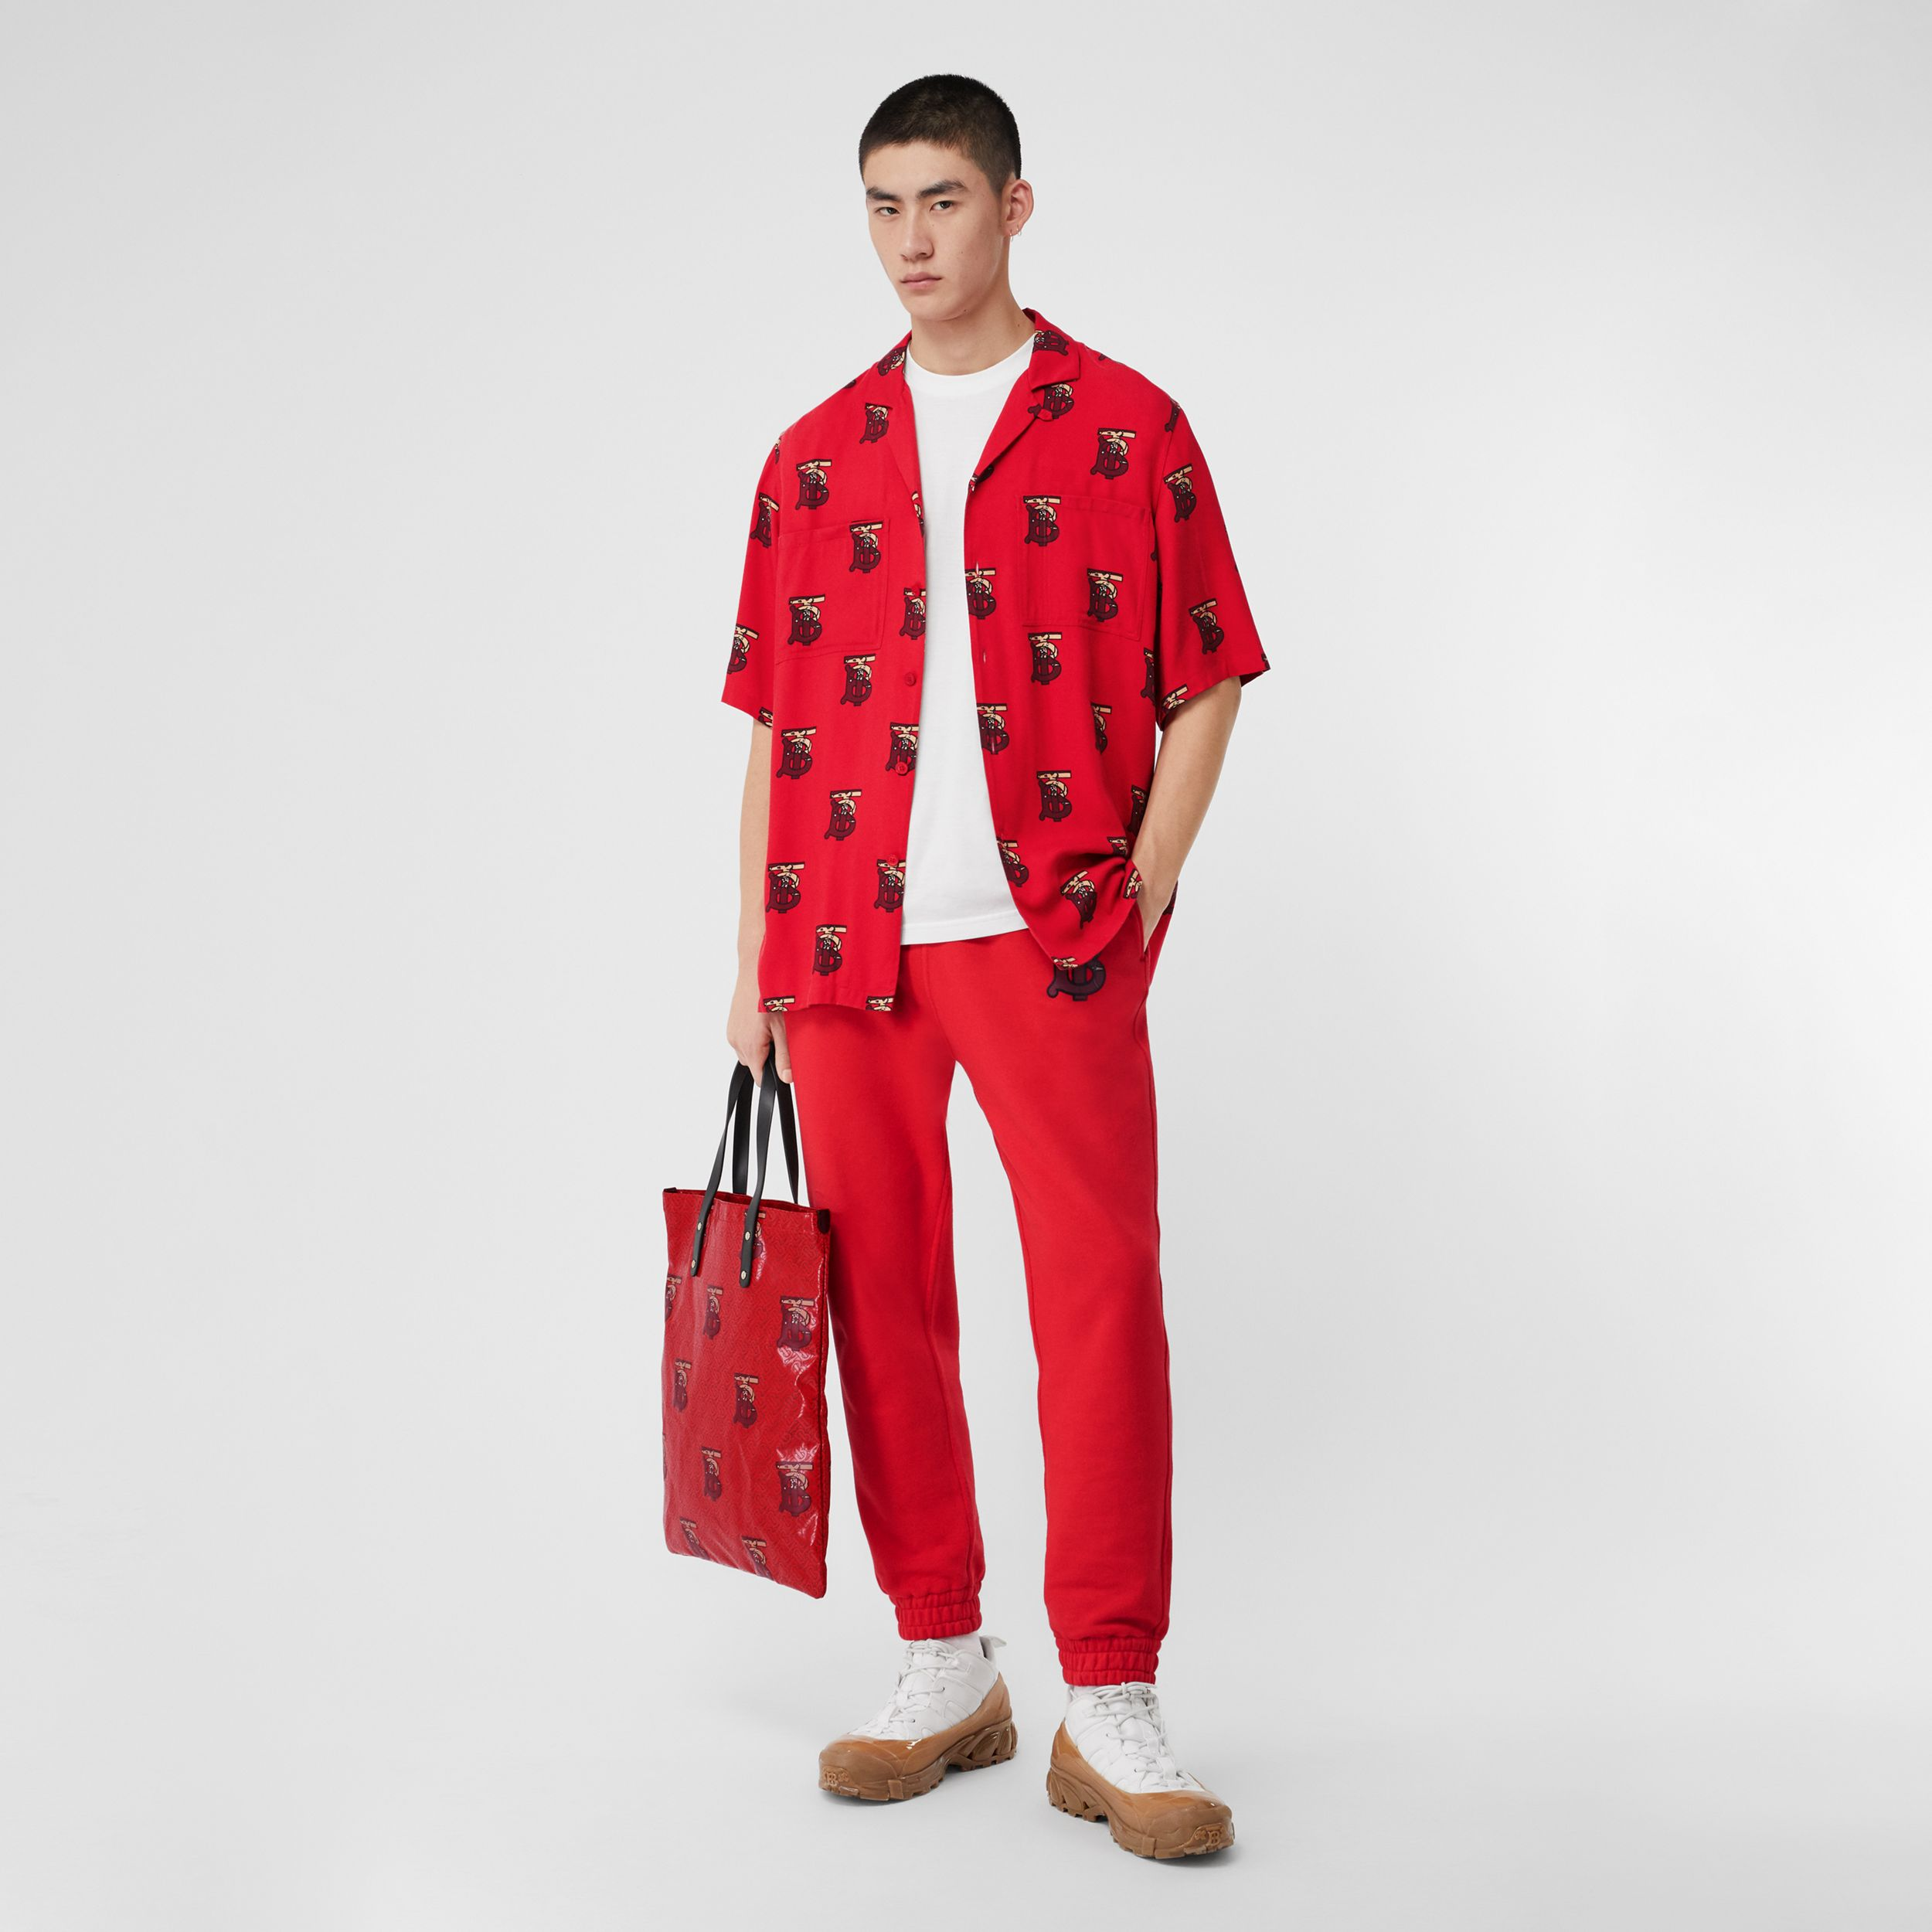 Monogram Motif Cotton Trackpants in Bright Red - Men | Burberry - 1